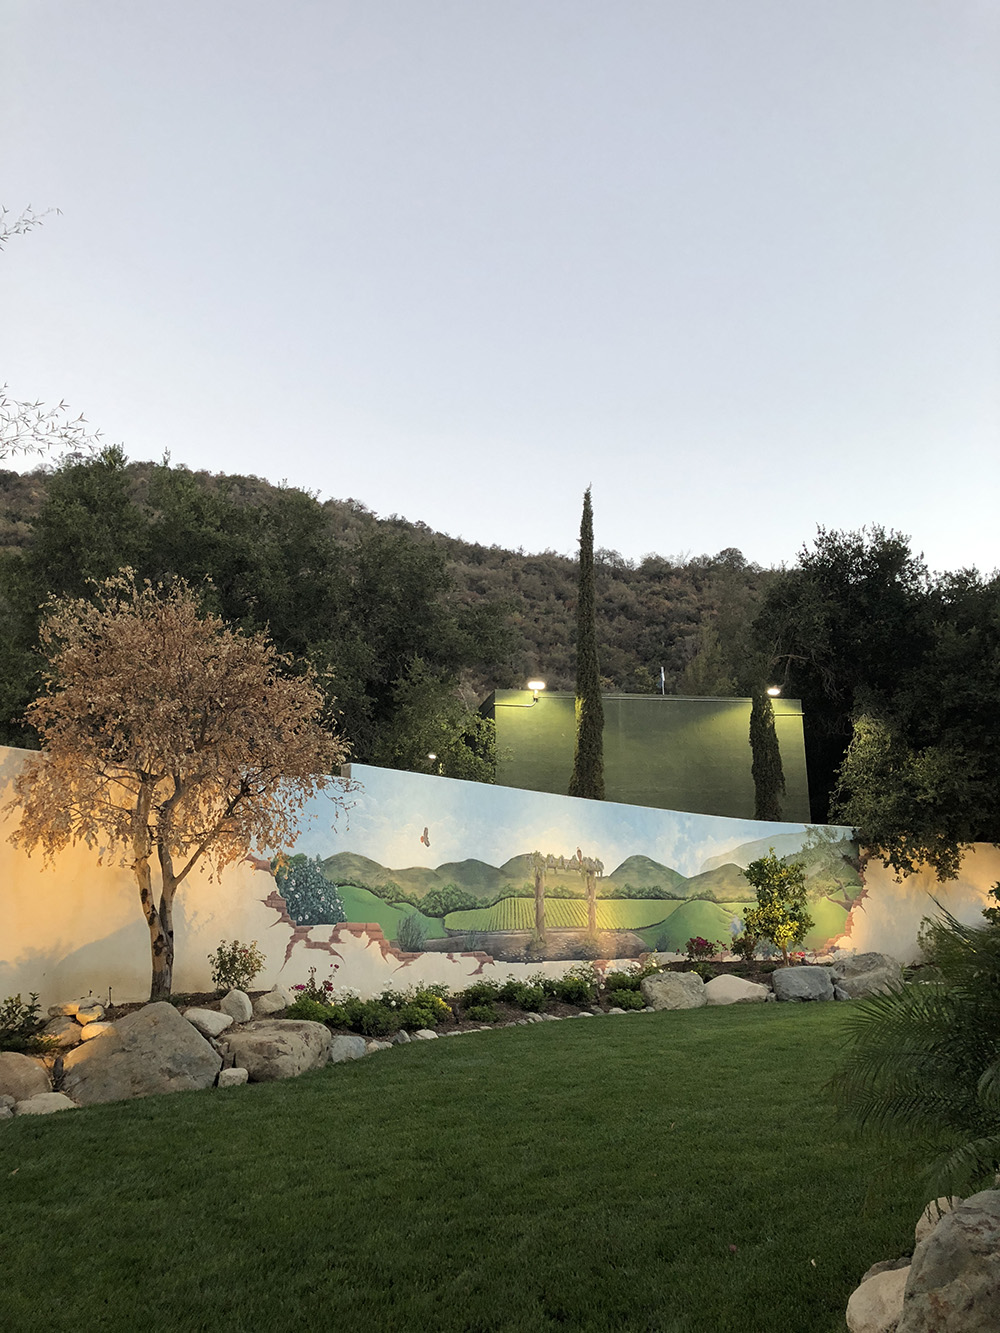 The spa's Secret Garden offers guests a peaceful and relaxing area to lounge.